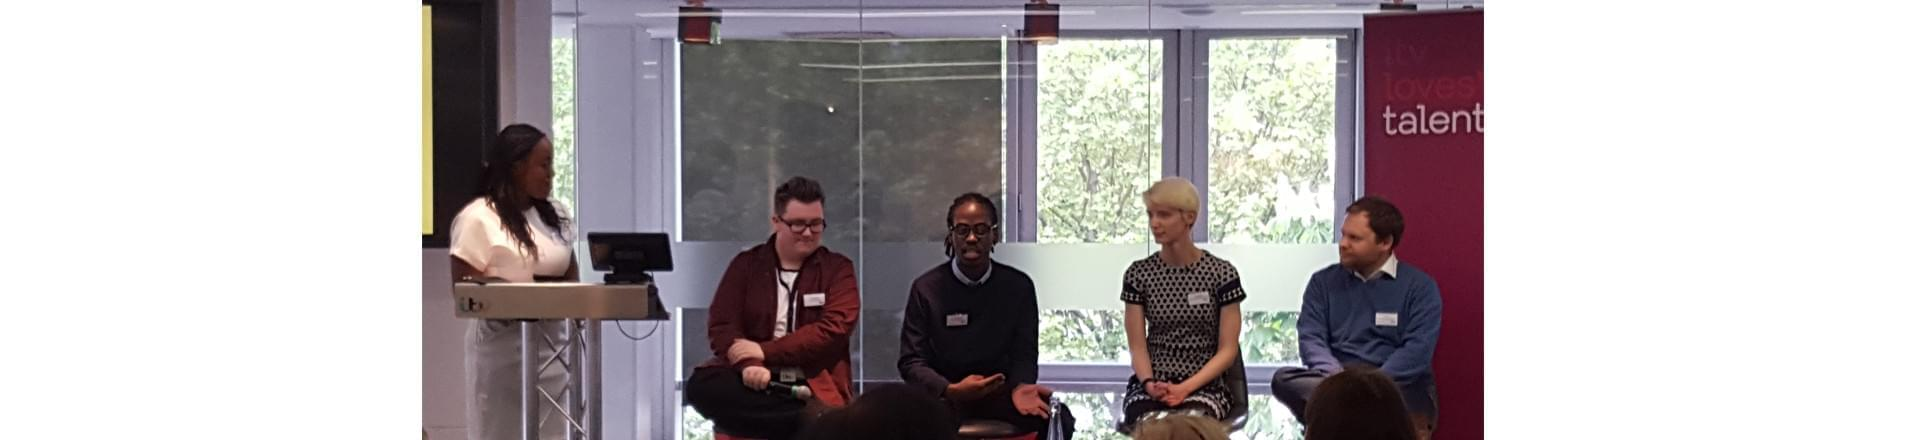 Lauren Mollyneaux-Brown talking at the event with the four panellists seated